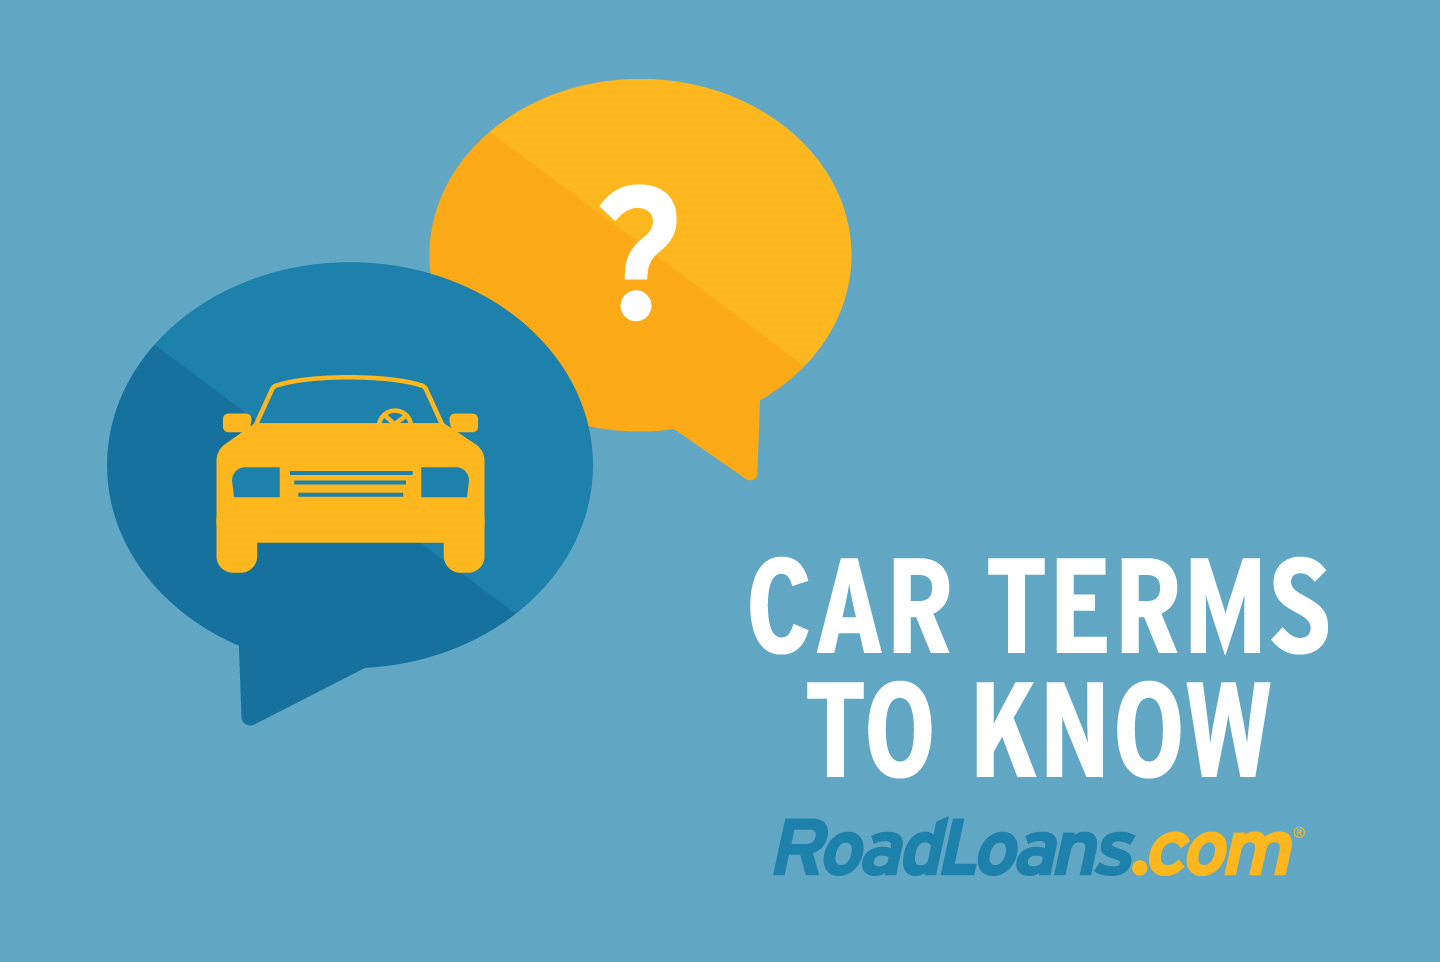 Car Terms to Know to Save Money | RoadLoans